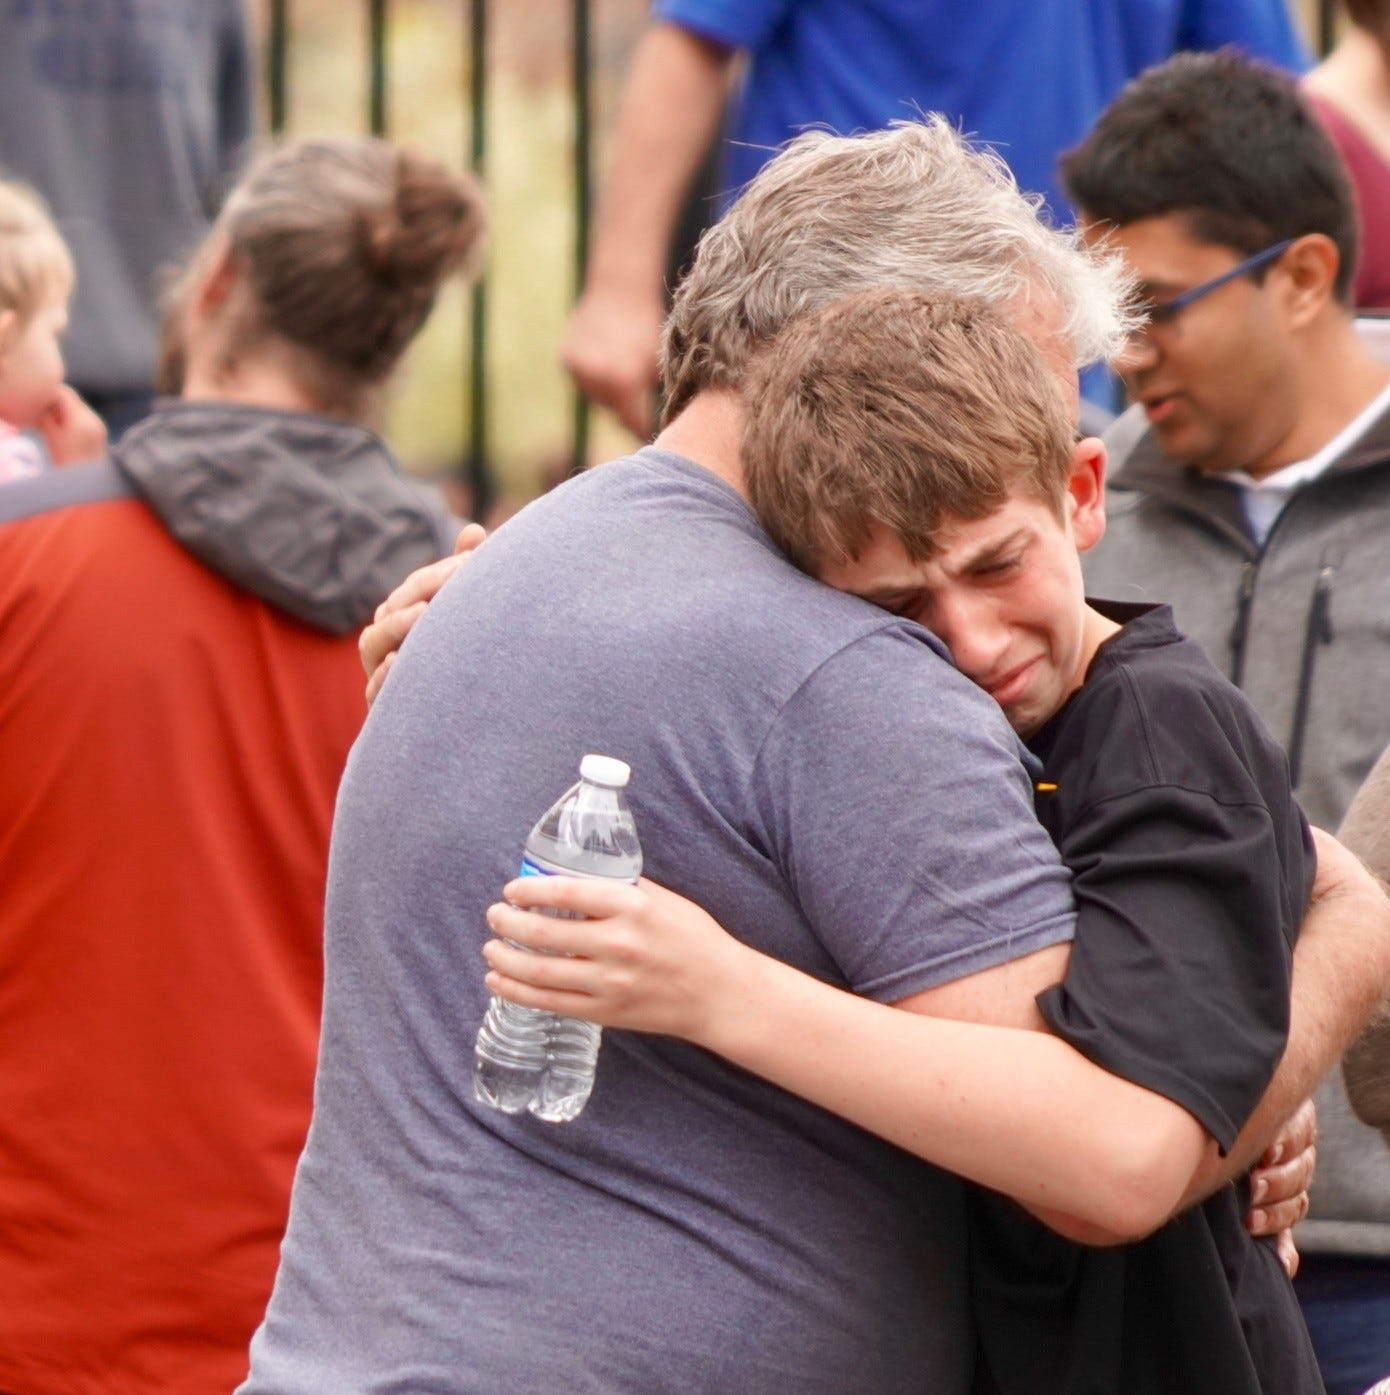 1 dead, 8 injured in shooting at Denver STEM school; 2 students in custody